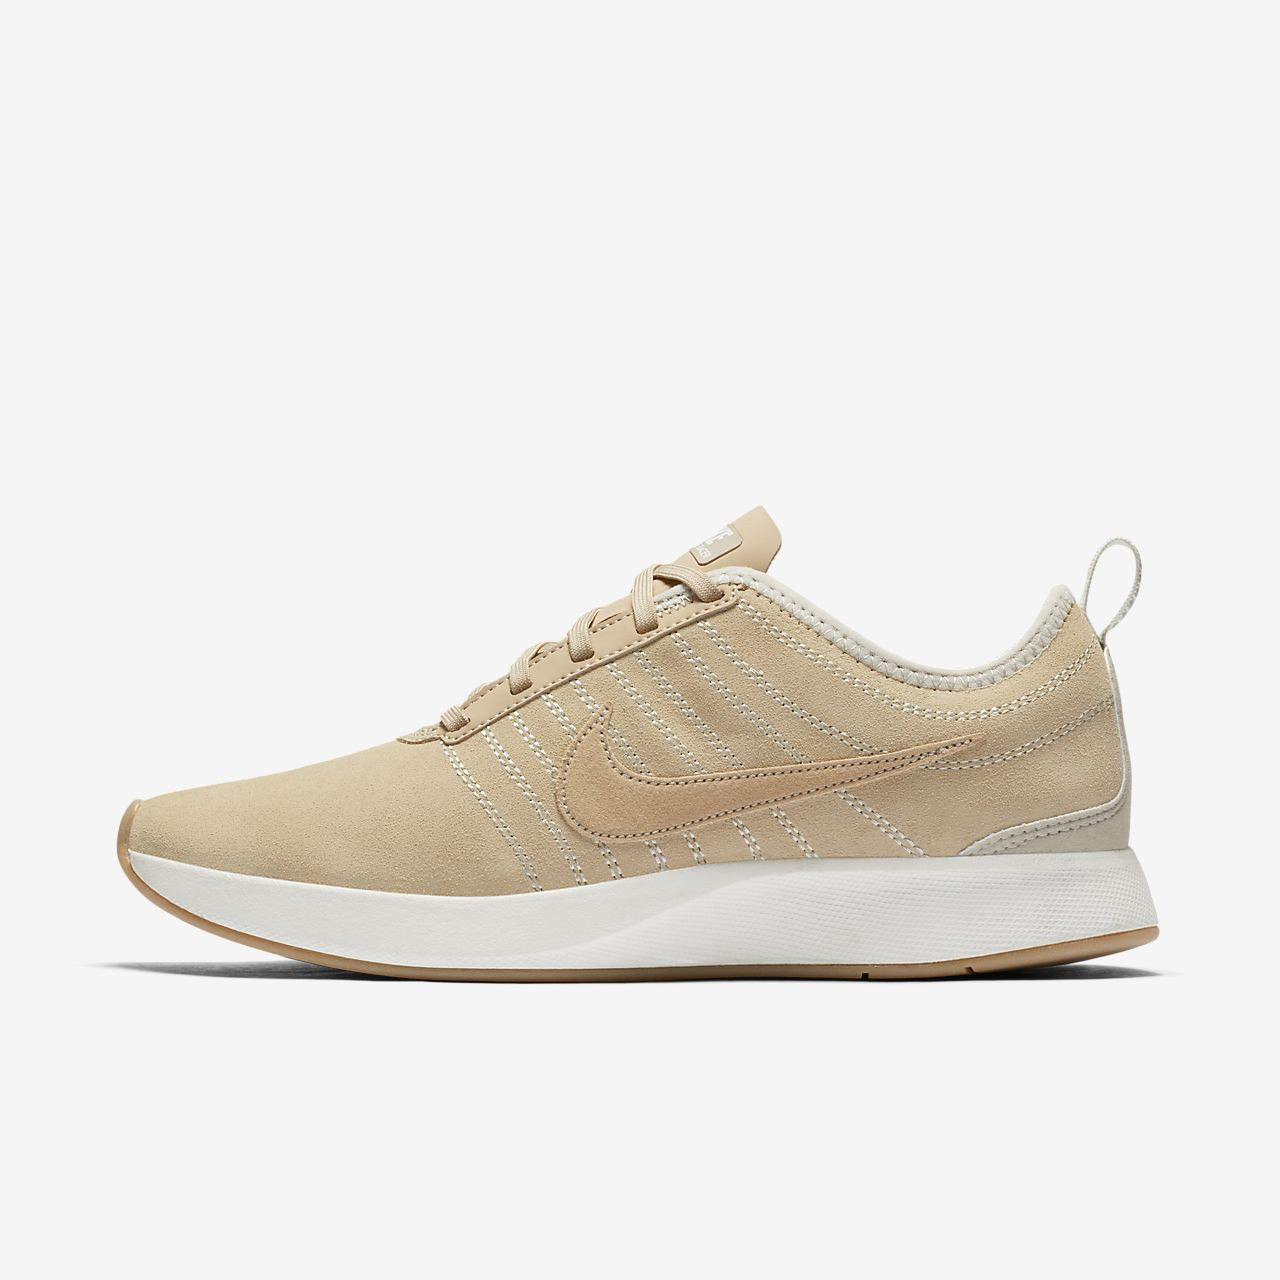 NIKE WOMENS DUALTONE RACER SE SZ 6 MUSHROON WHITE GUM BROWN KHAKI 940418 200